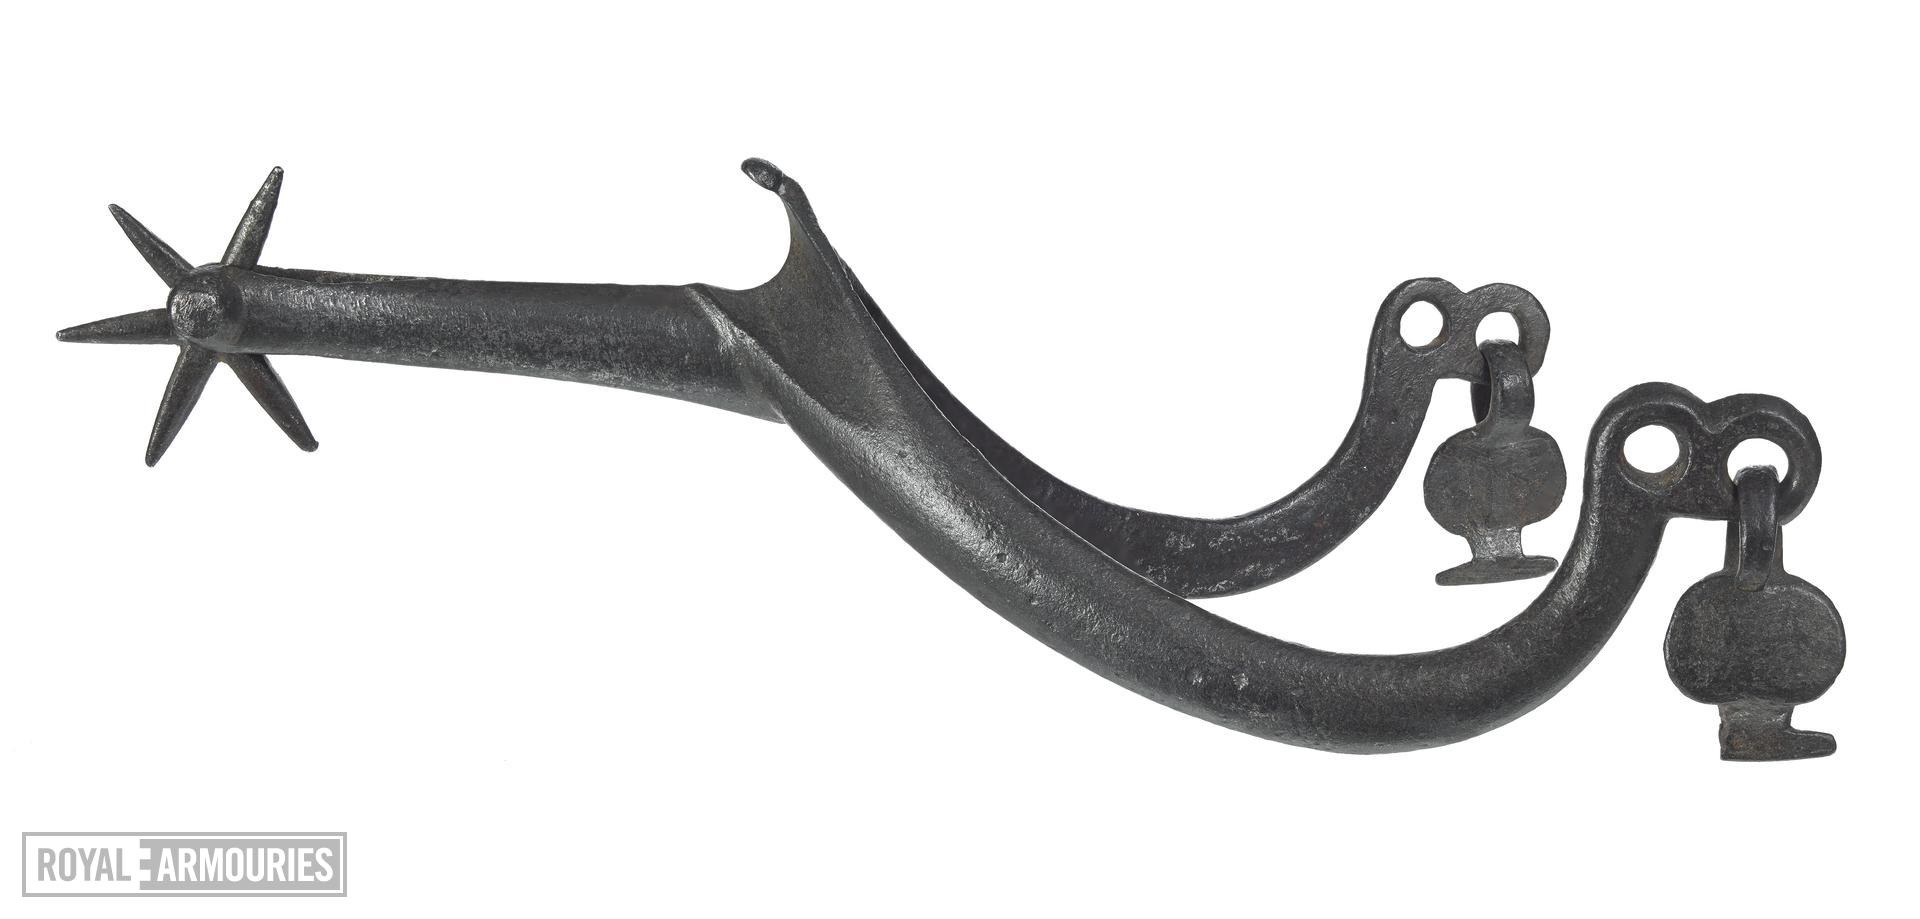 Rowel spur, early 15th century, European (VI.360)